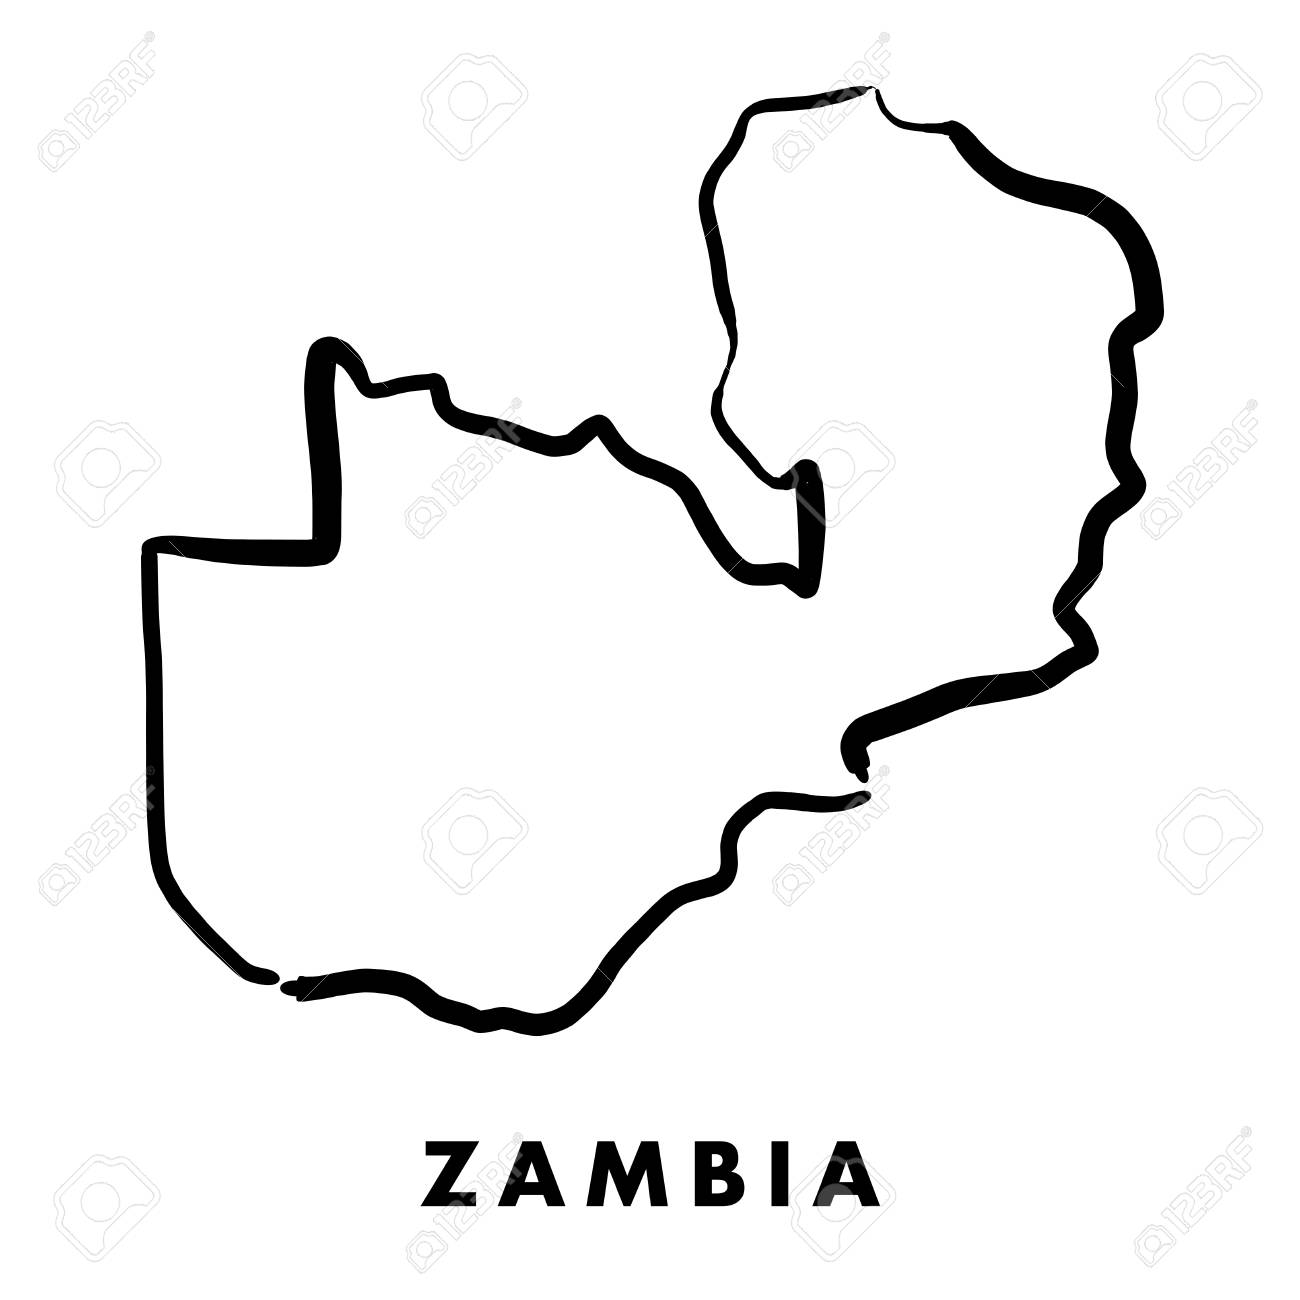 Zambian Map Vector.Zambia Simple Map Outline Smooth Simplified Country Shape Map